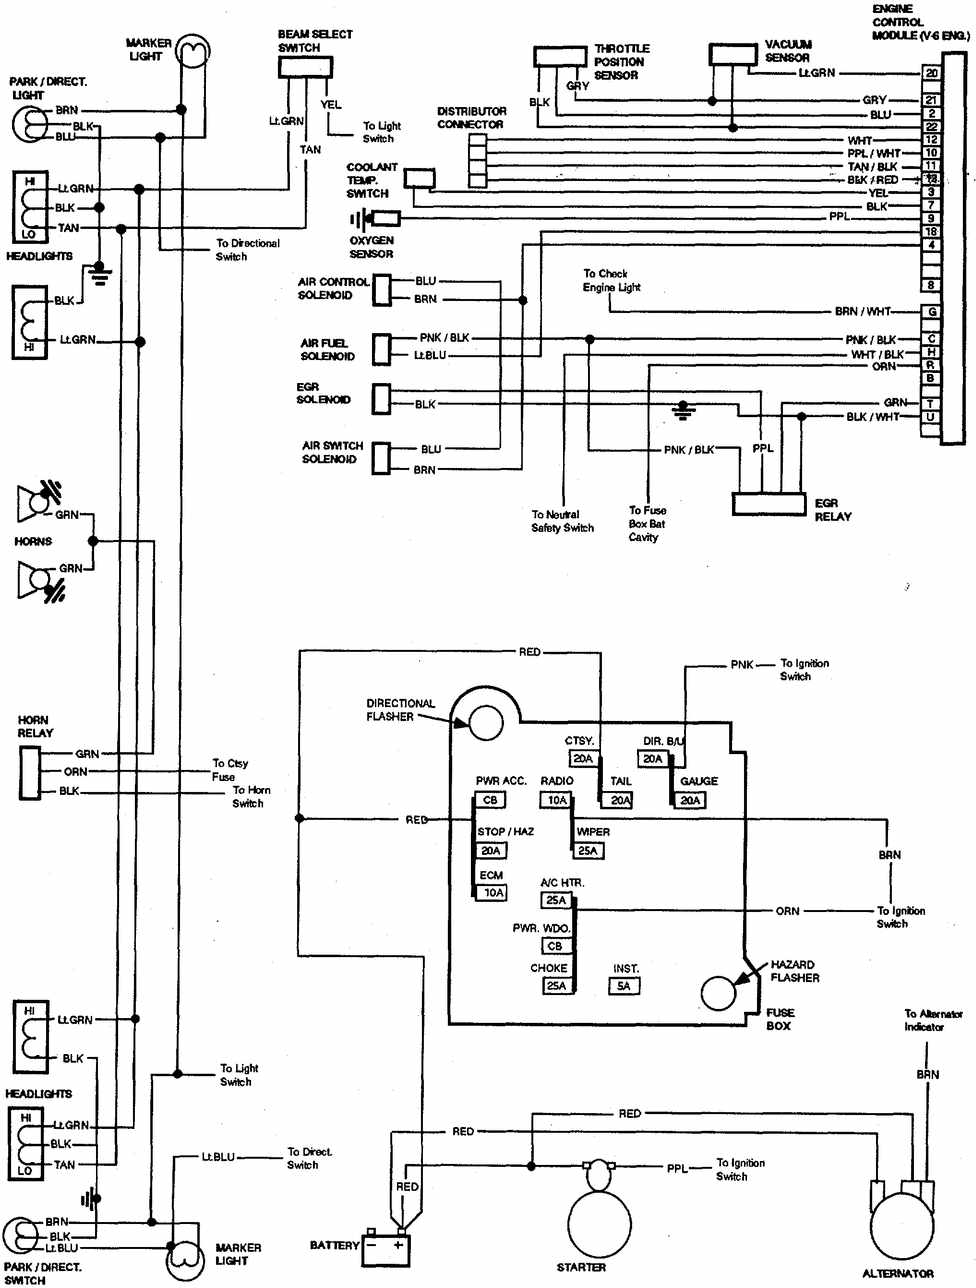 Chevrolet V8 Trucks 19811987 Electrical Wiring Diagram | All about Wiring Diagrams